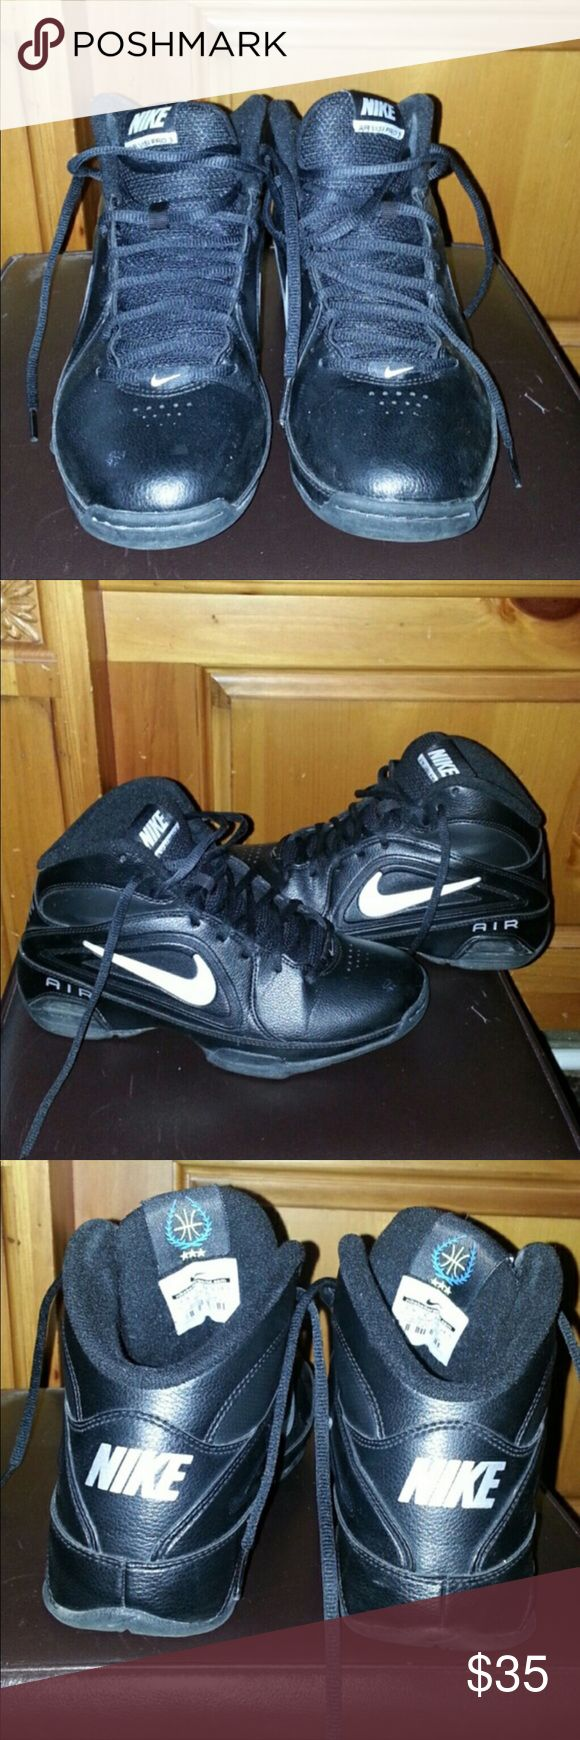 Nike  mid top black and white leather shoes L7 Used but still good condition . No odor or rips just not my style. They look good w skinny jeans. No box sorry Nike Shoes Sneakers